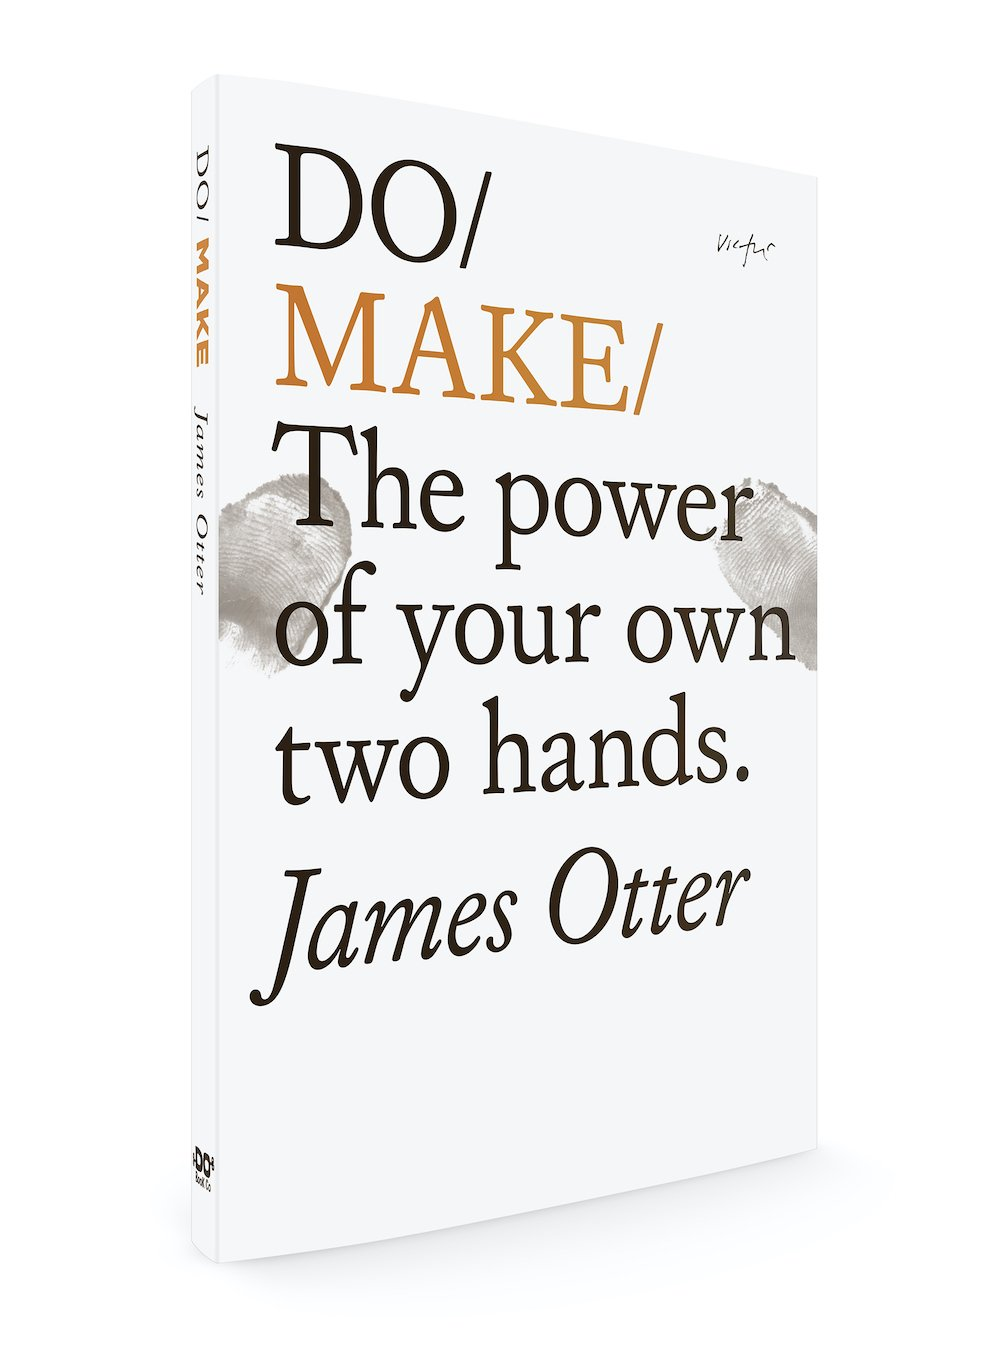 Do Make by James Otter is published by Do Books